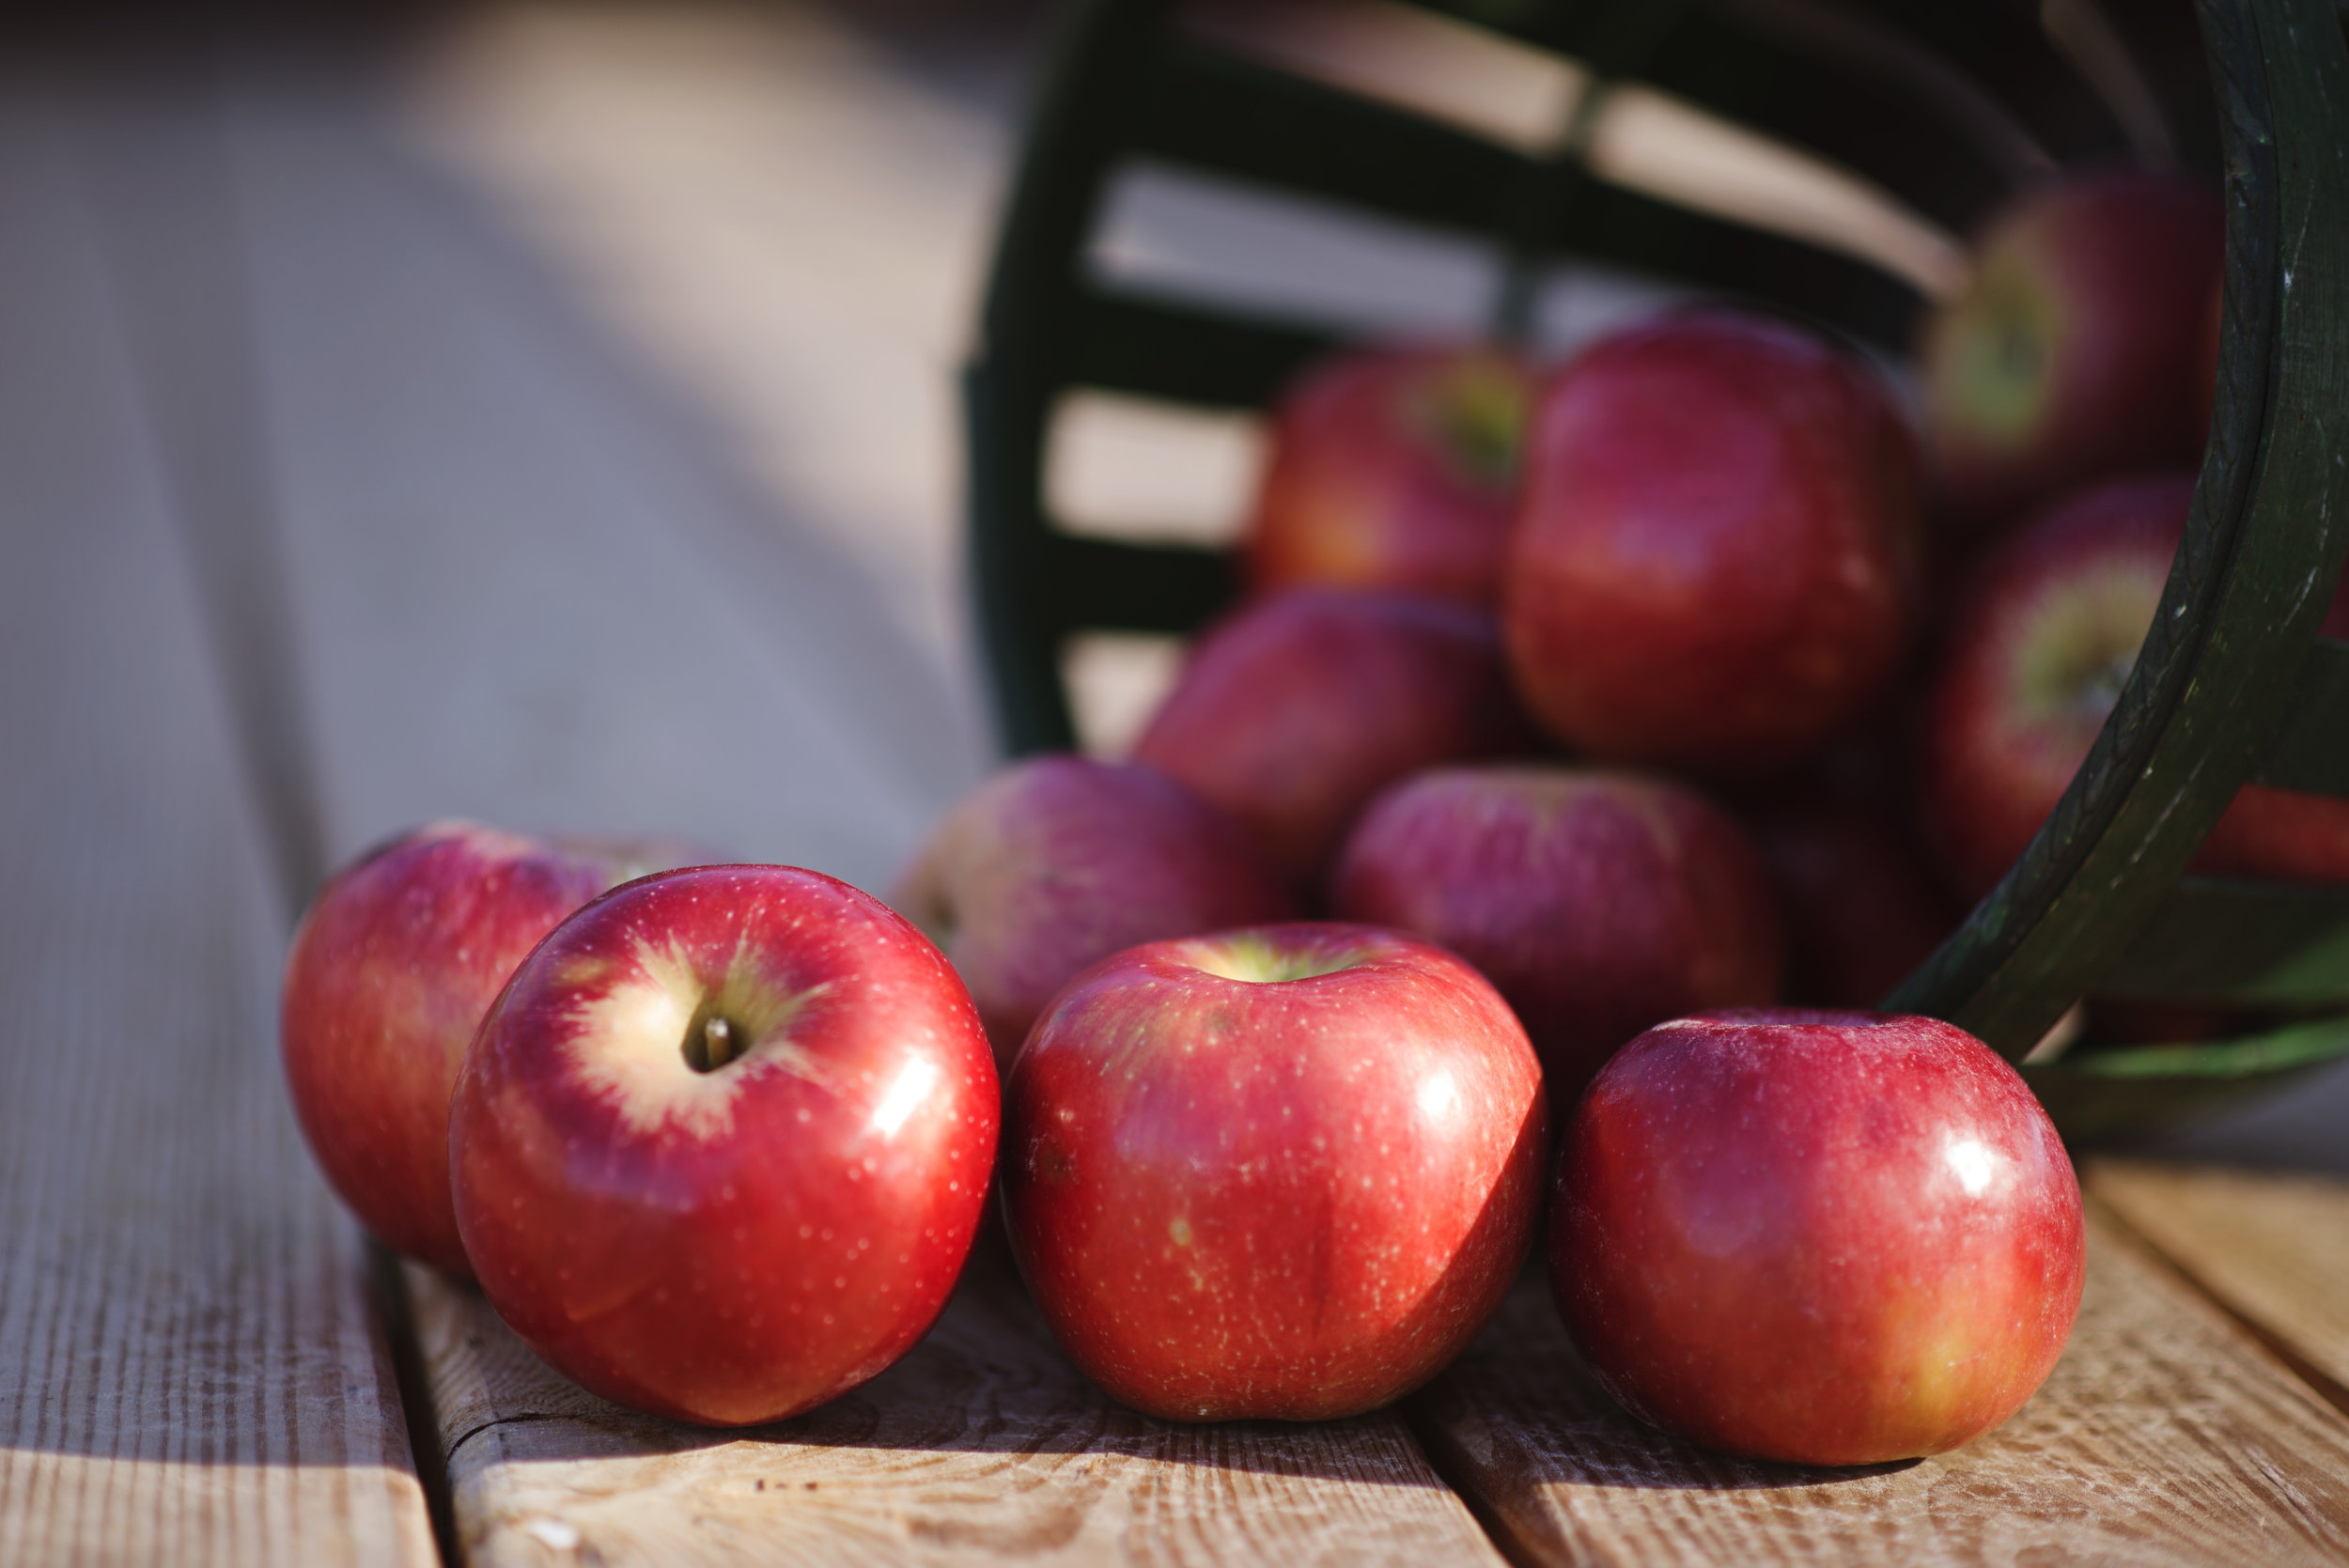 What Vitamins are in Apples